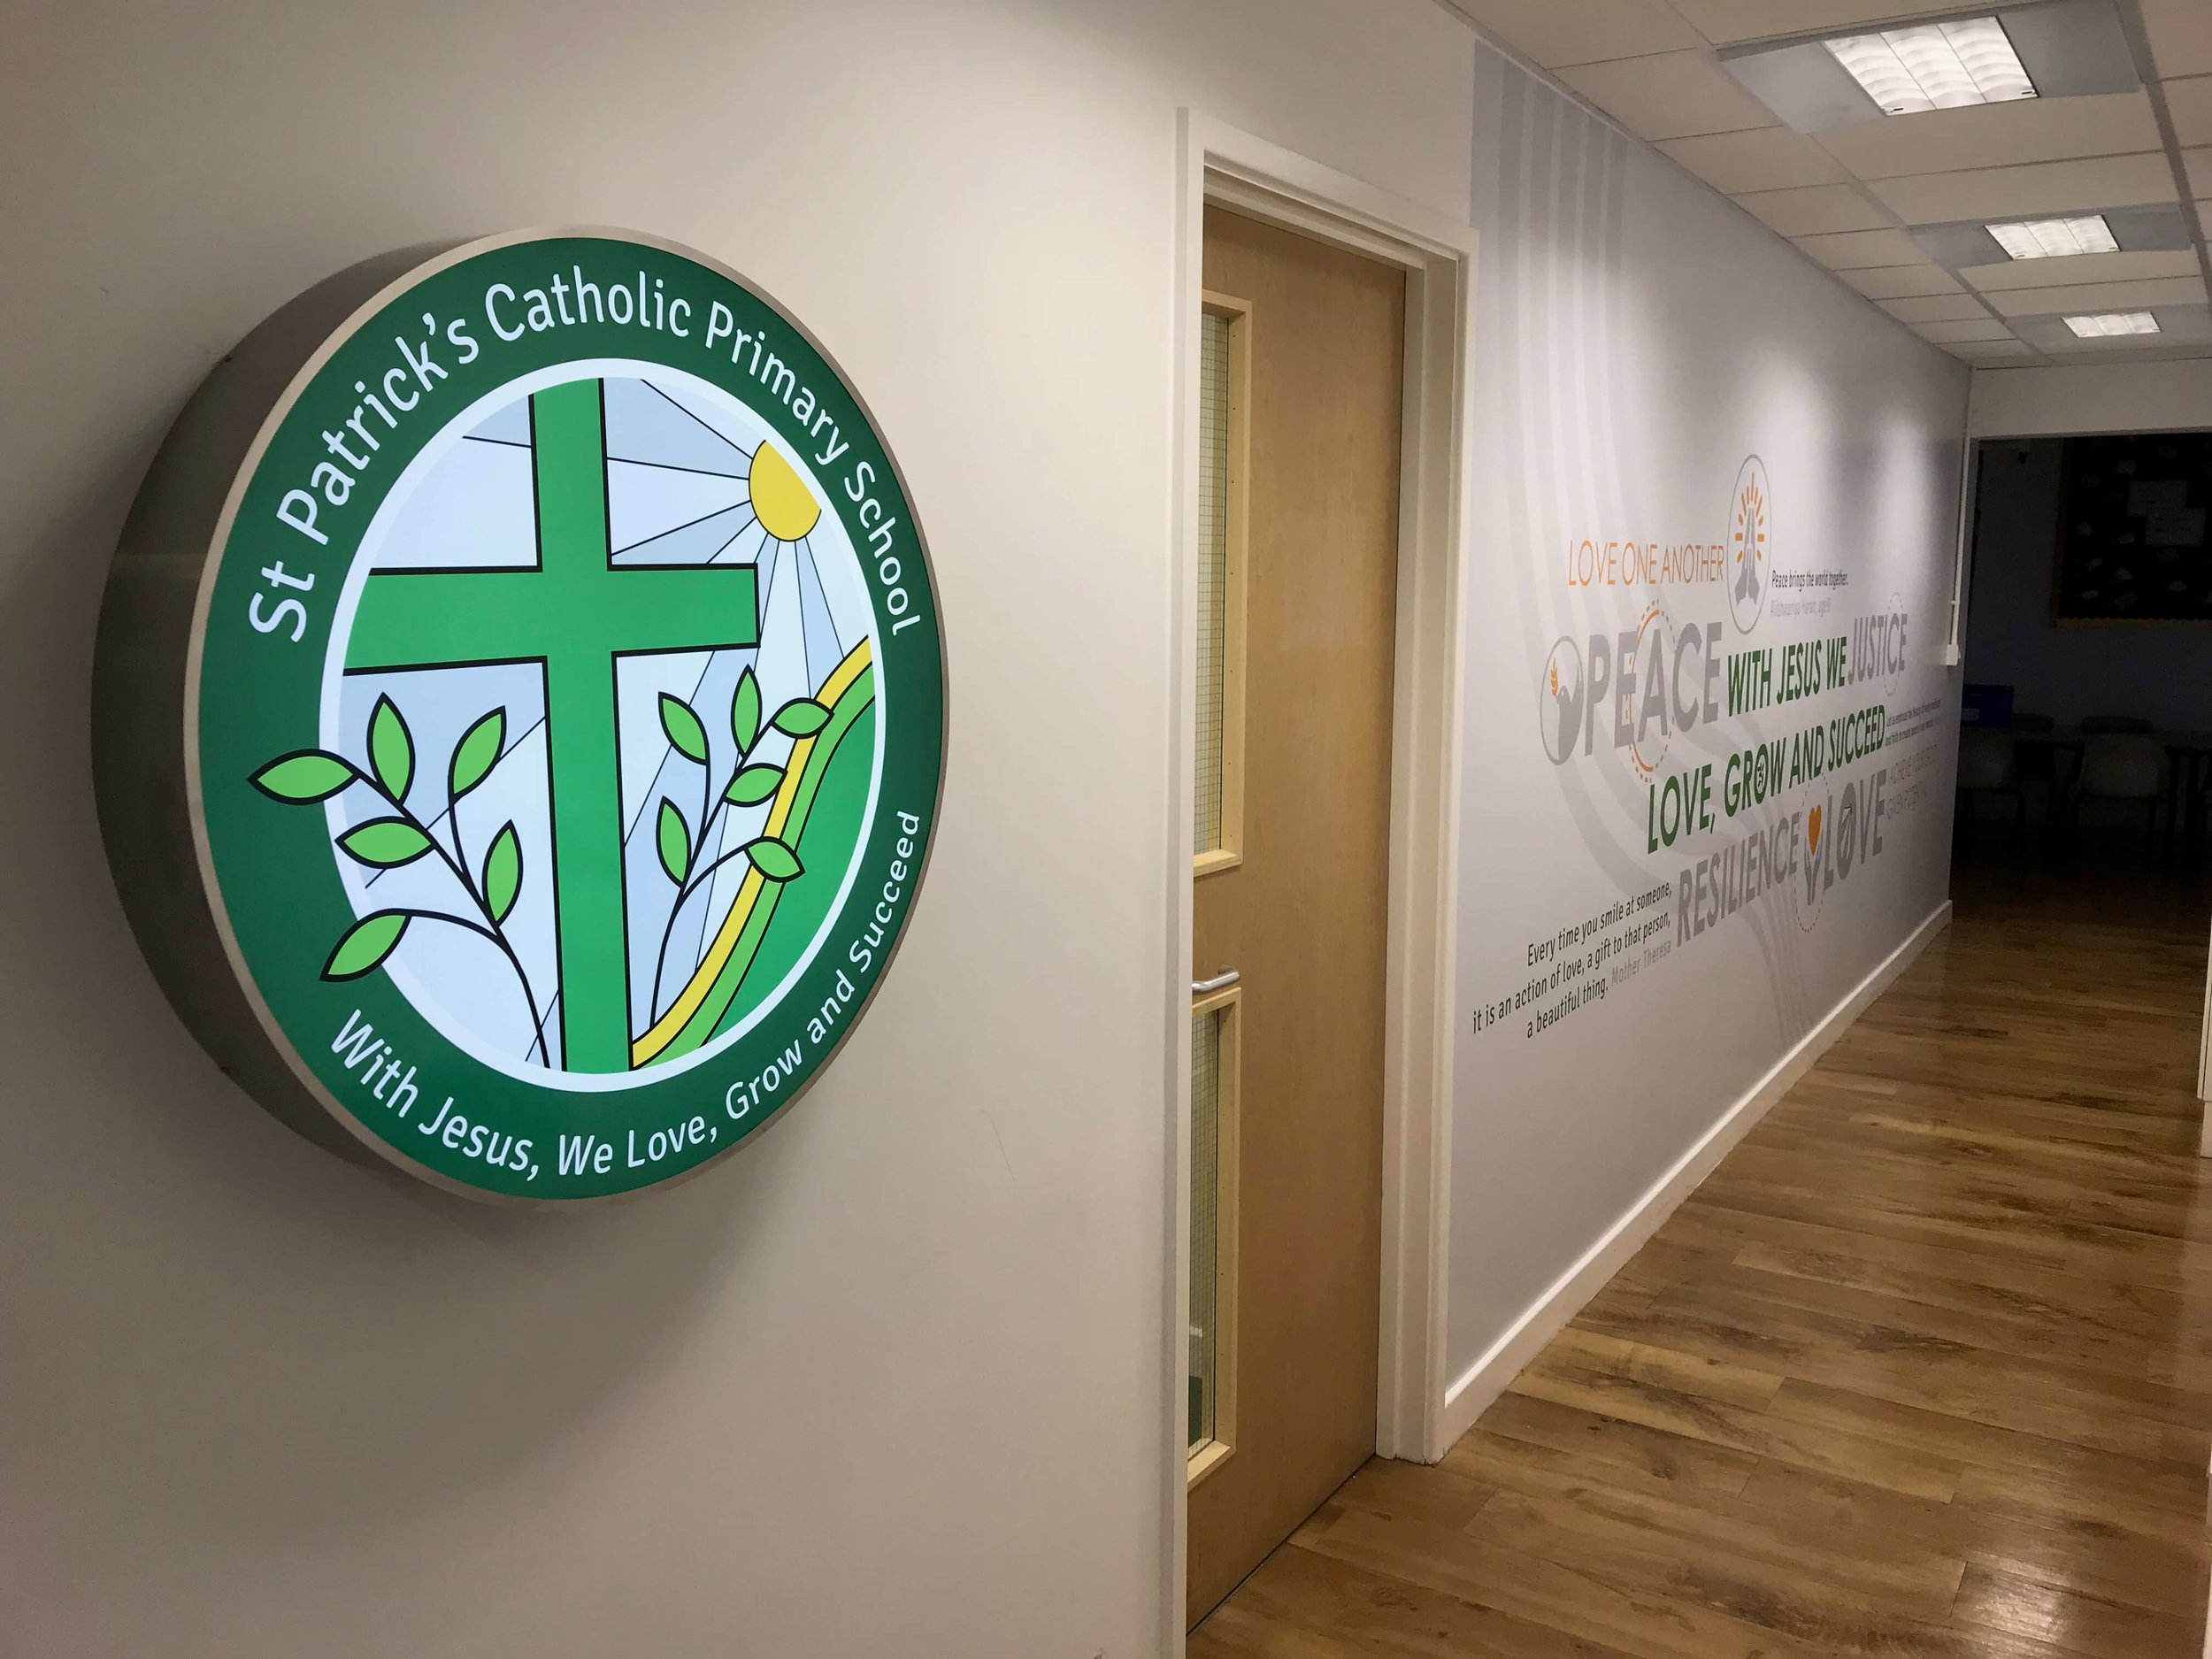 St Patricks brand & values wall graphic, school wall graphic design